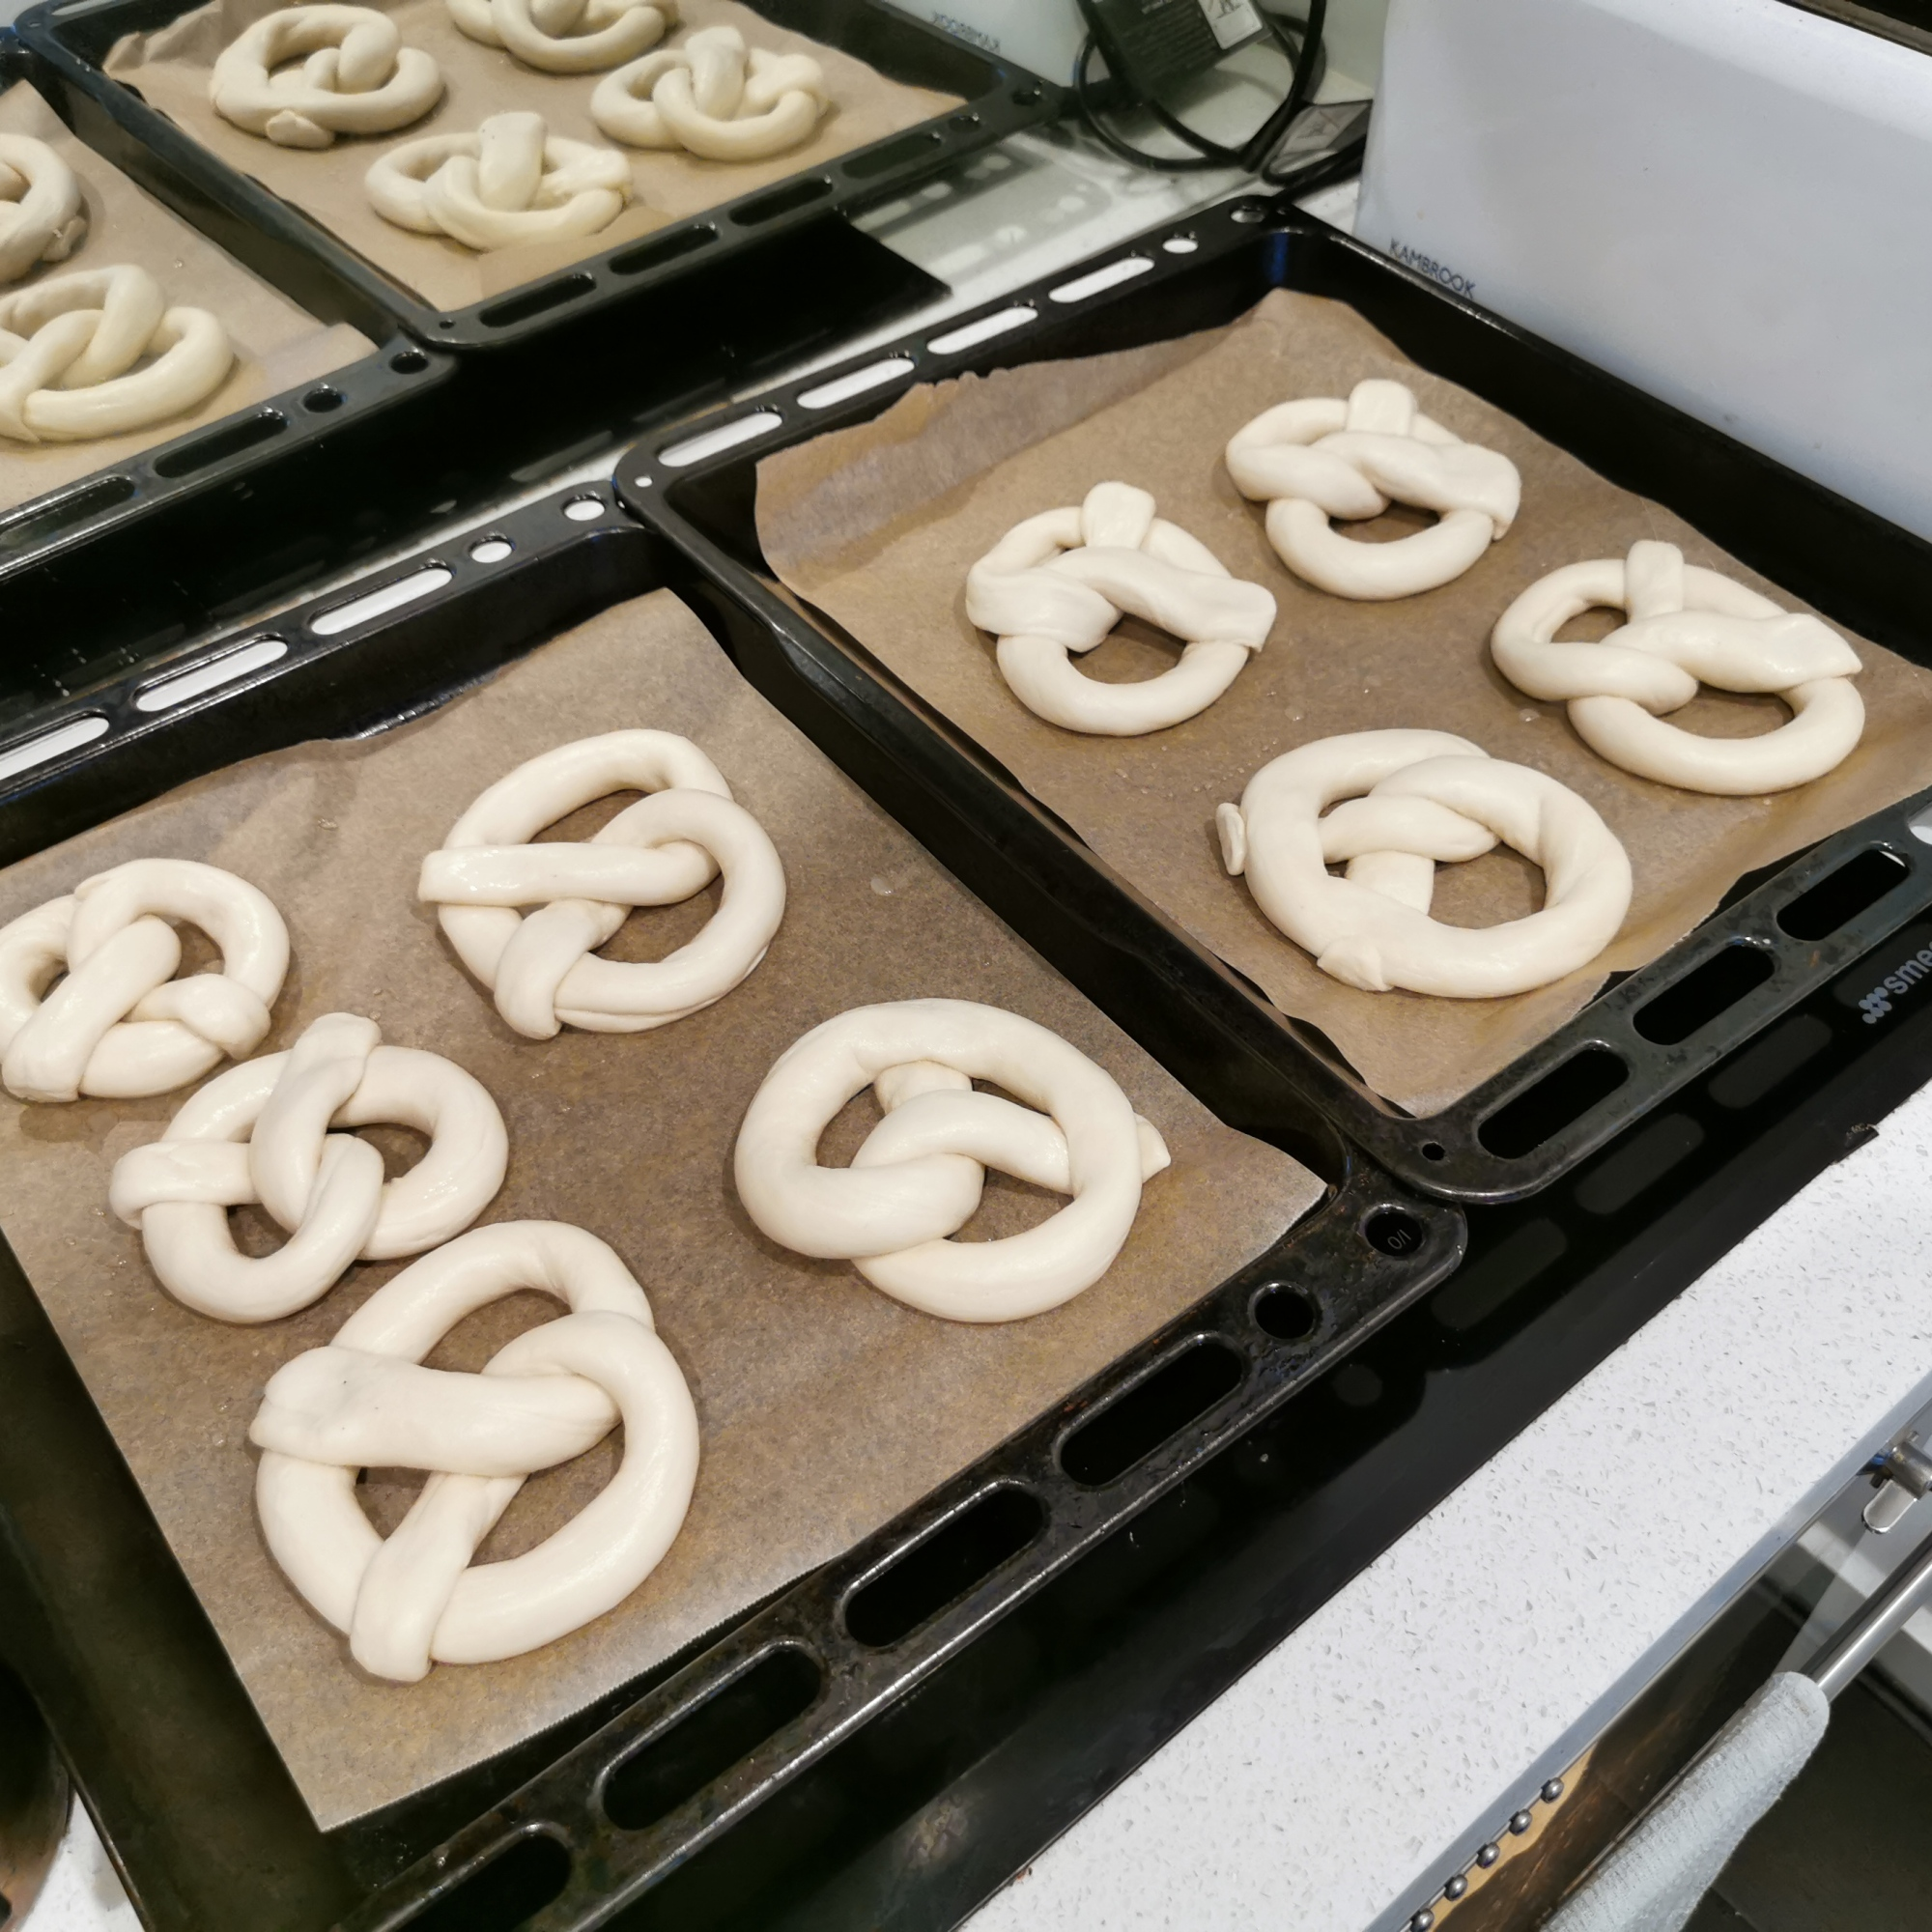 9 unbaked soft pretzels sit in baking trays on top of the stove